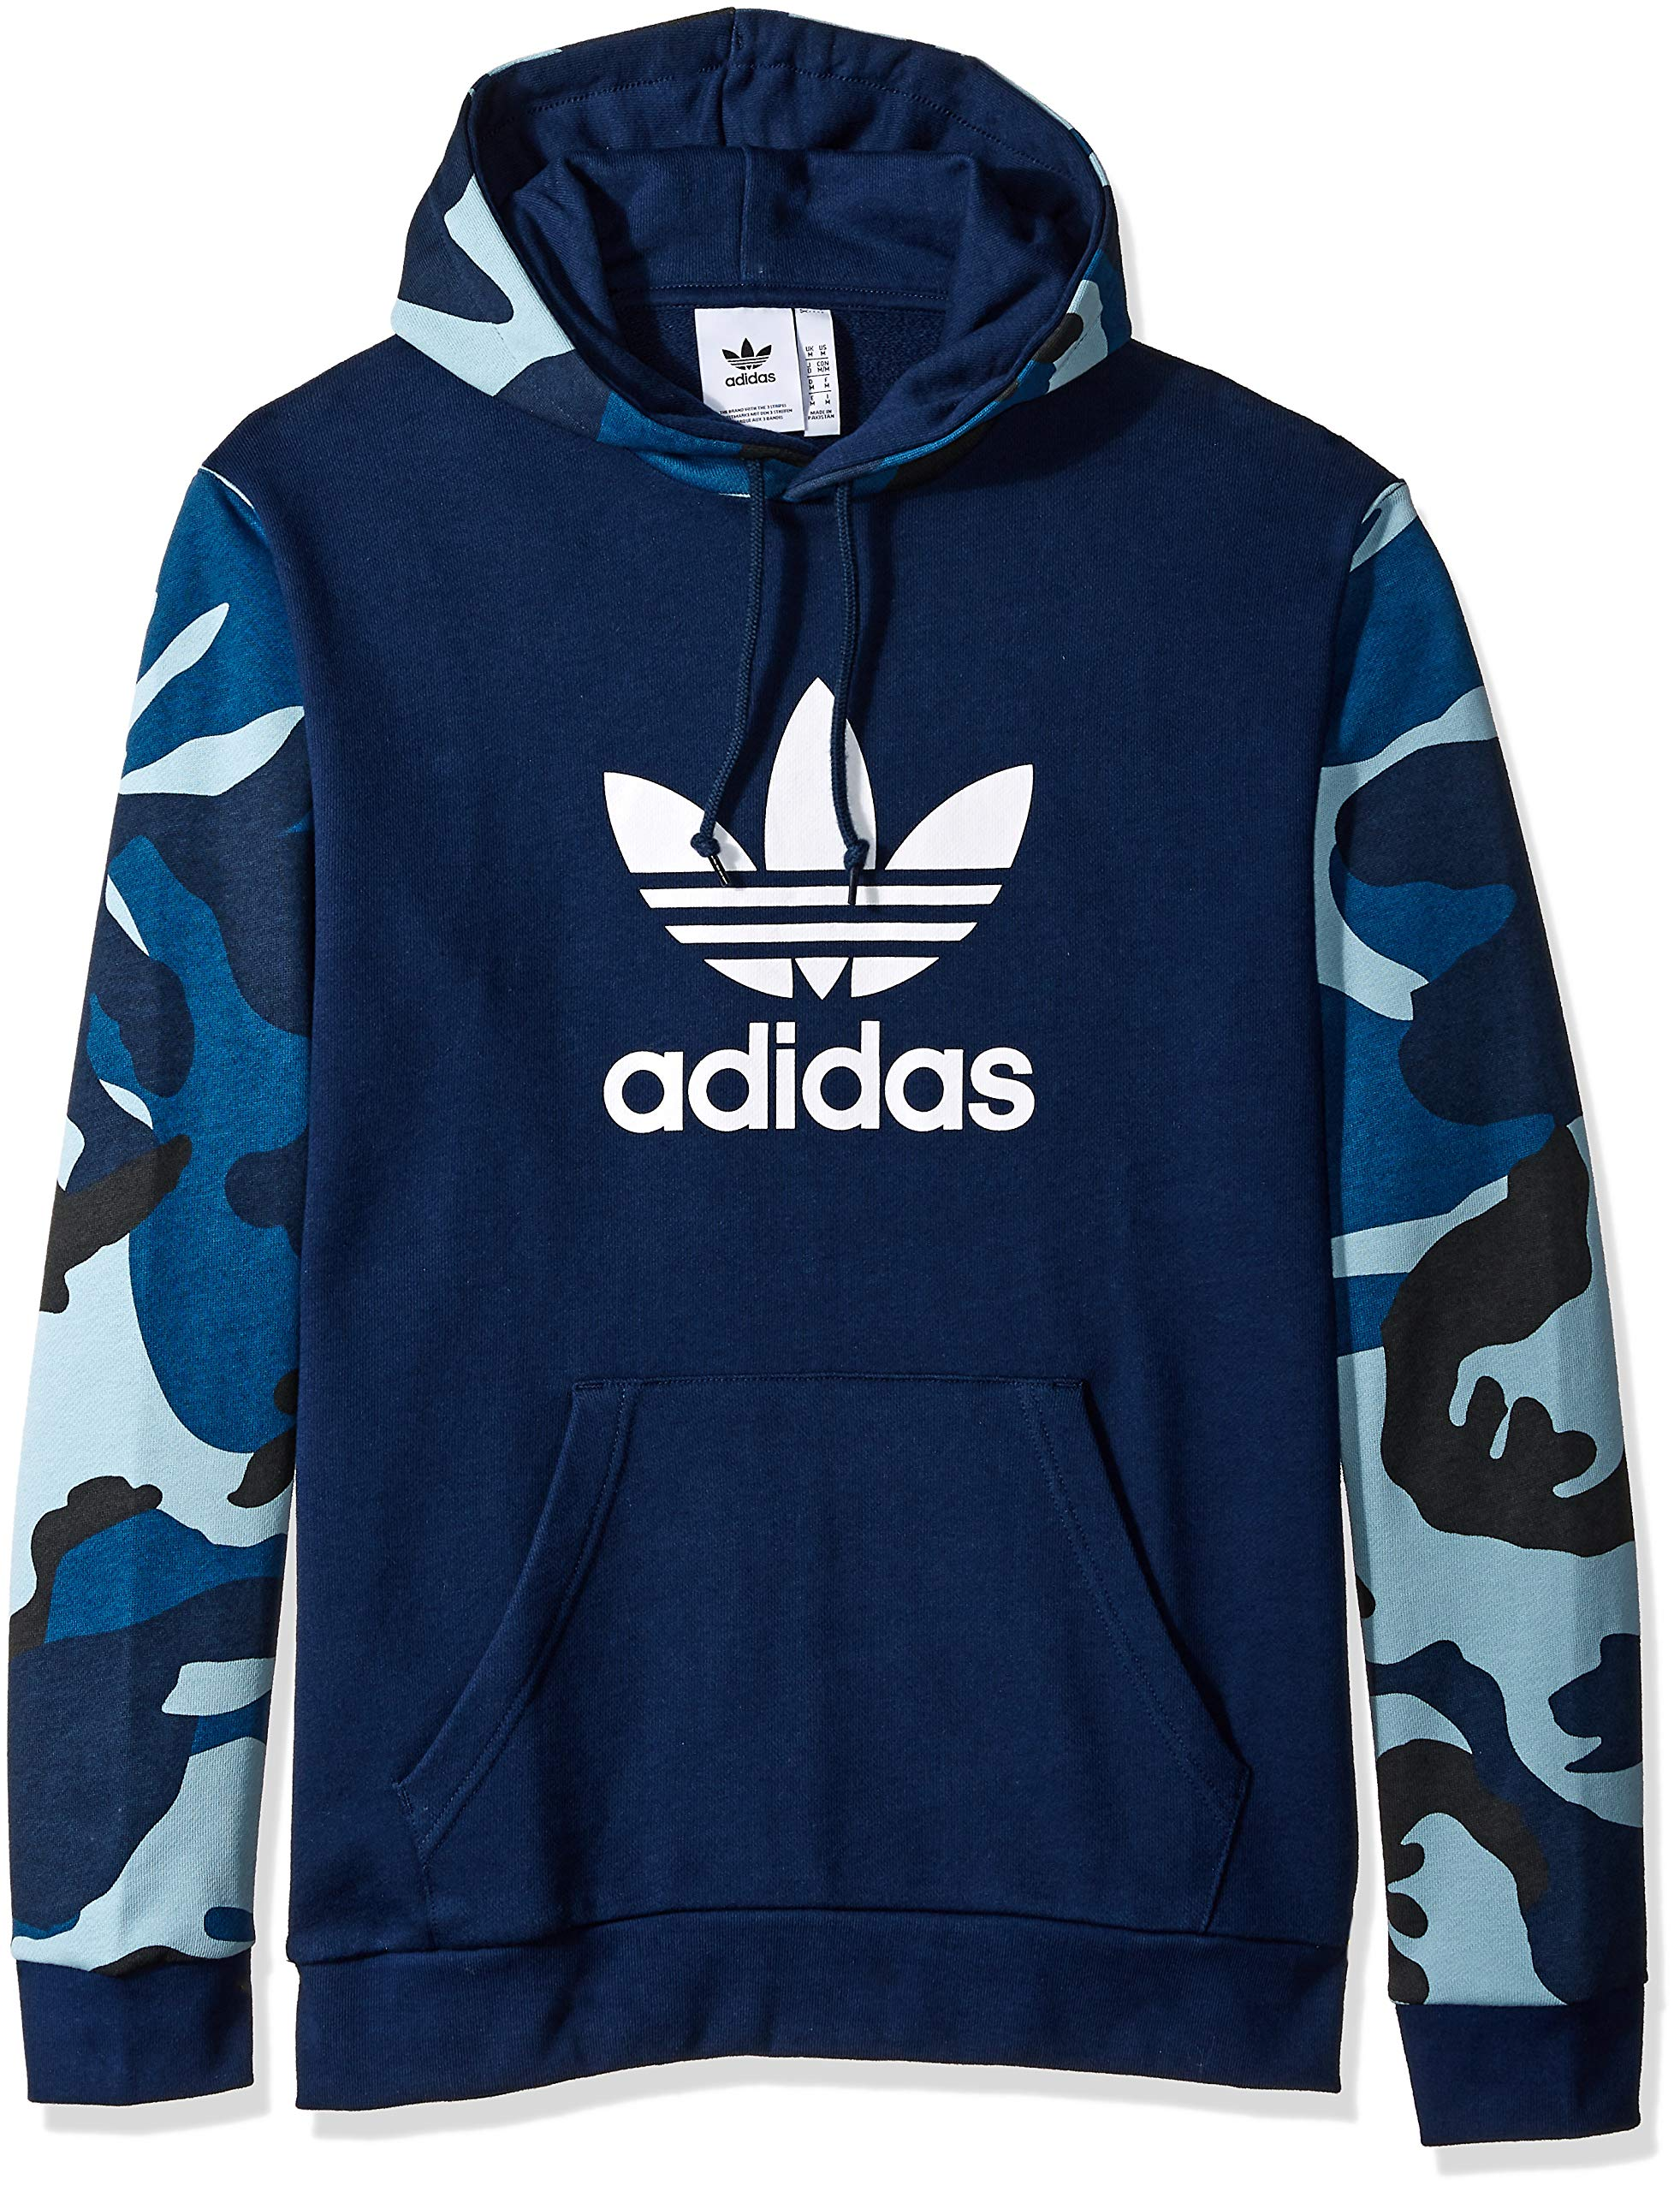 Details about adidas Originals Men's Camo Over The Head Hoodie, Choose SZcolor